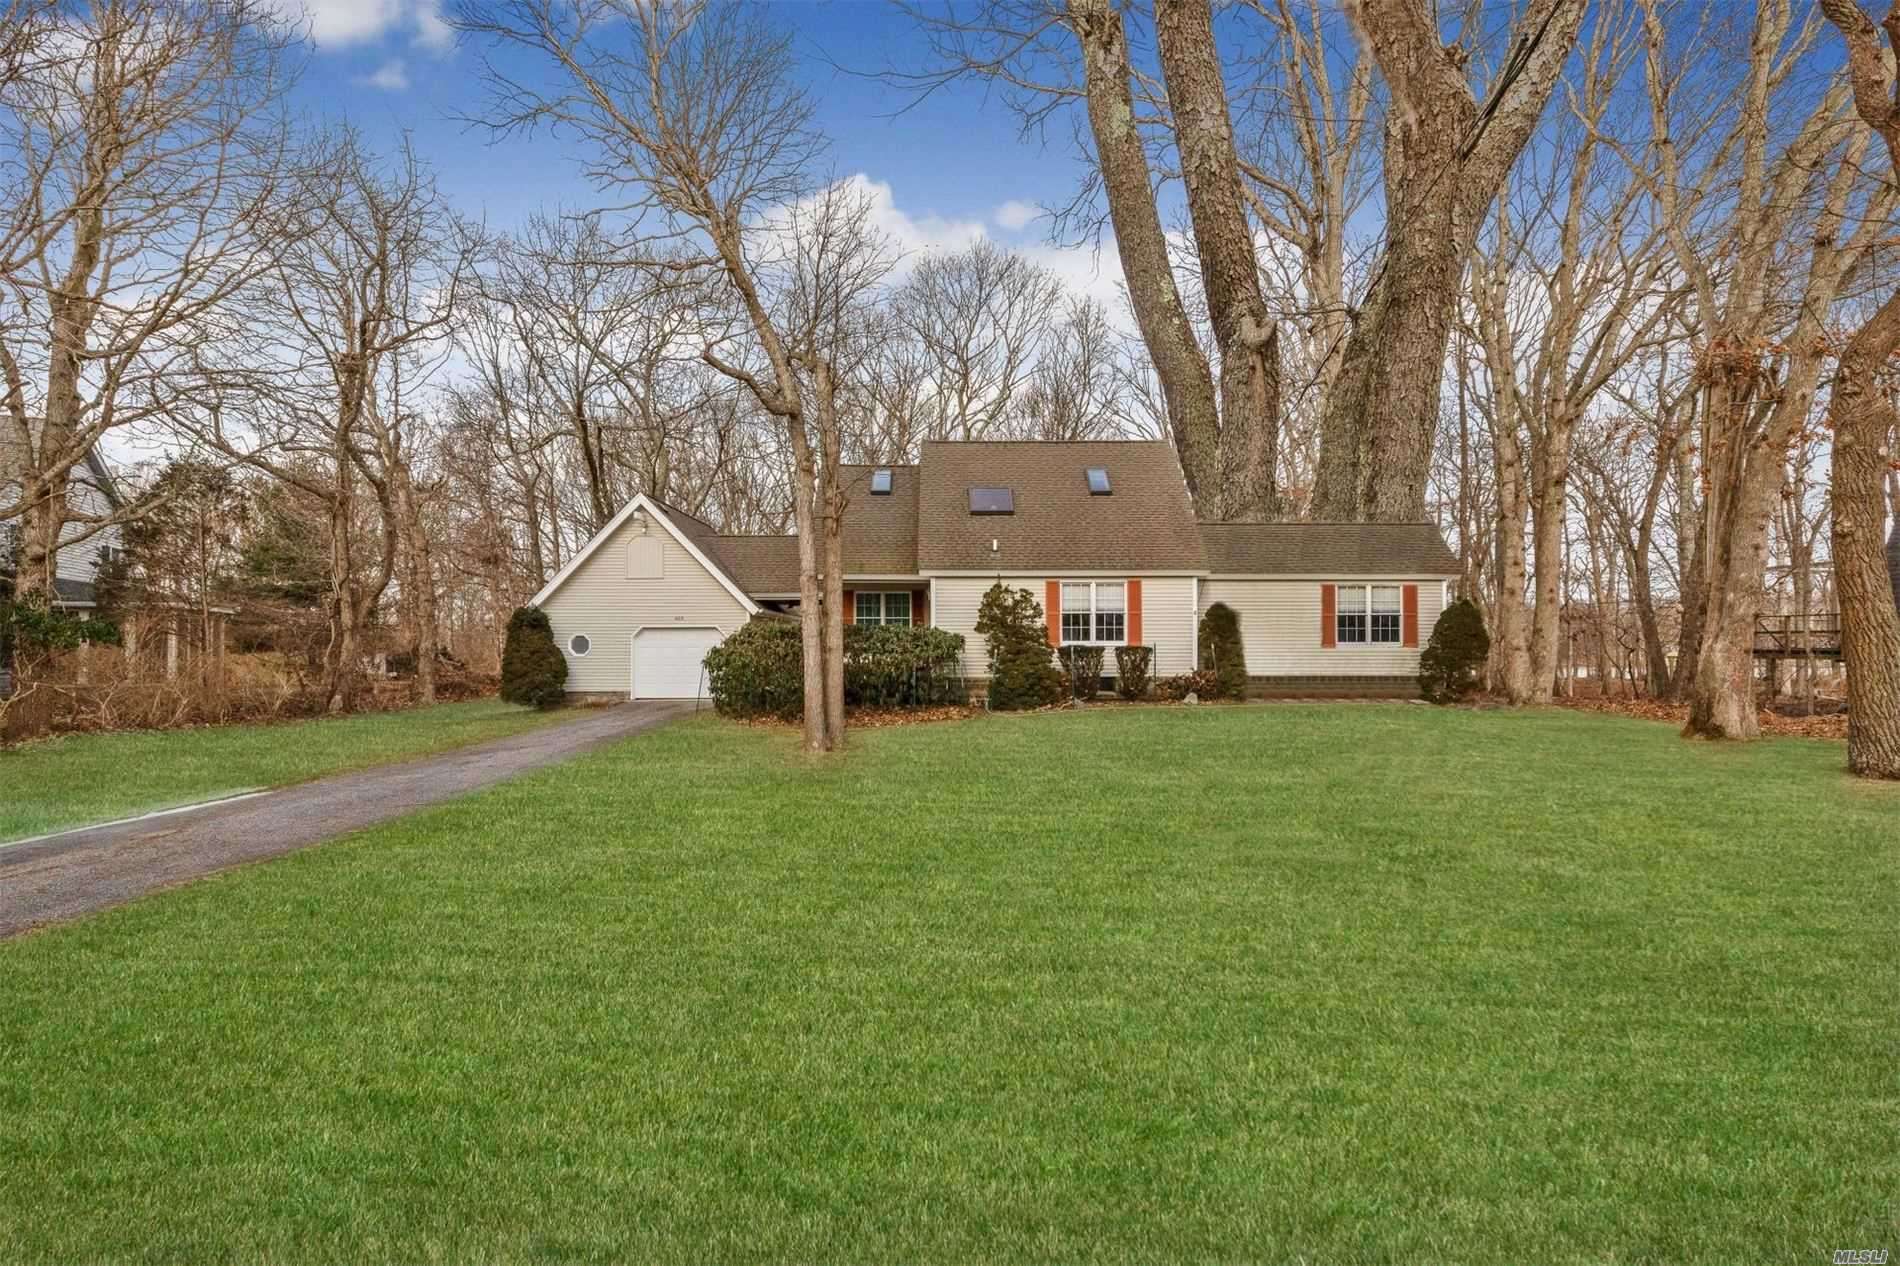 Southold Shores Private Beach Community. Immaculate Cape Style Home Features 2 Bedrooms, 2.5 Baths With Water Views, Deeded Beach And Docking On A First Come First Serve Basis.